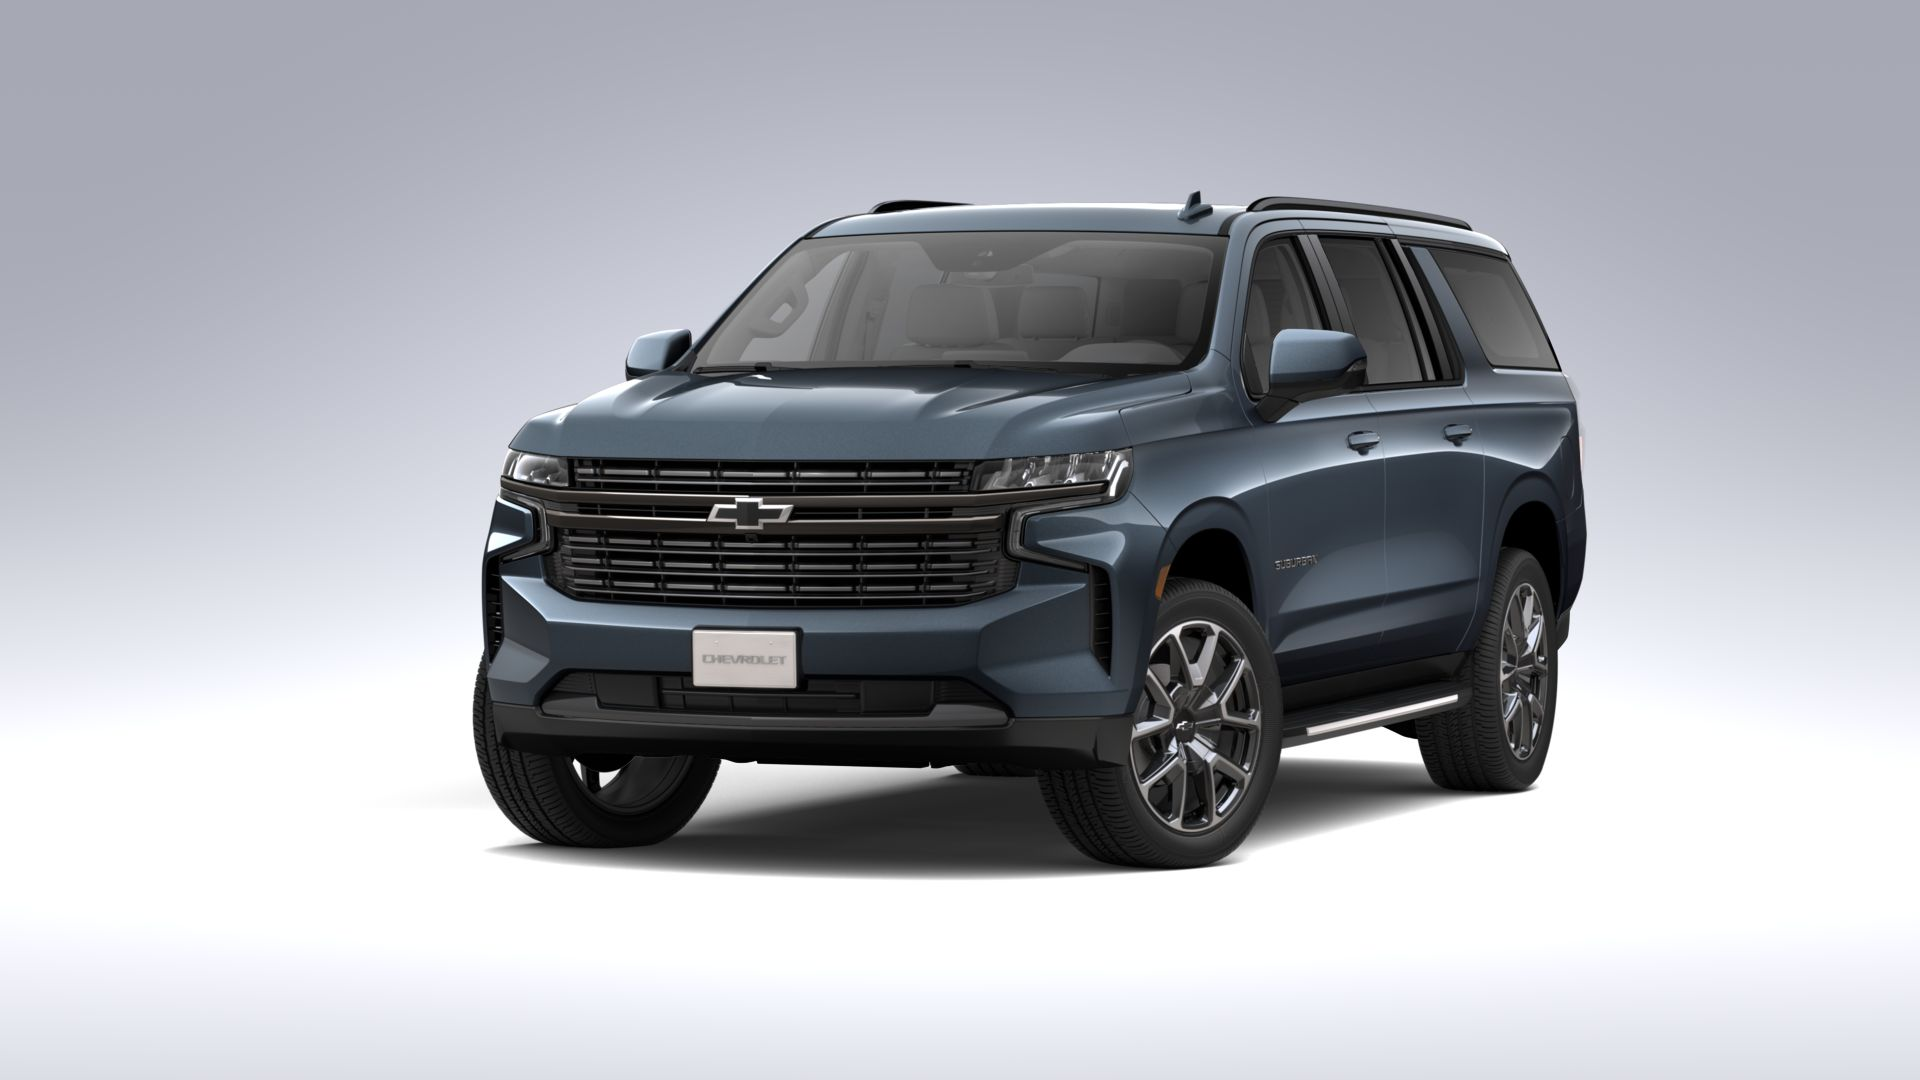 New 2021 Chevrolet Suburban RST FOUR WHEEL DRIVE SUV